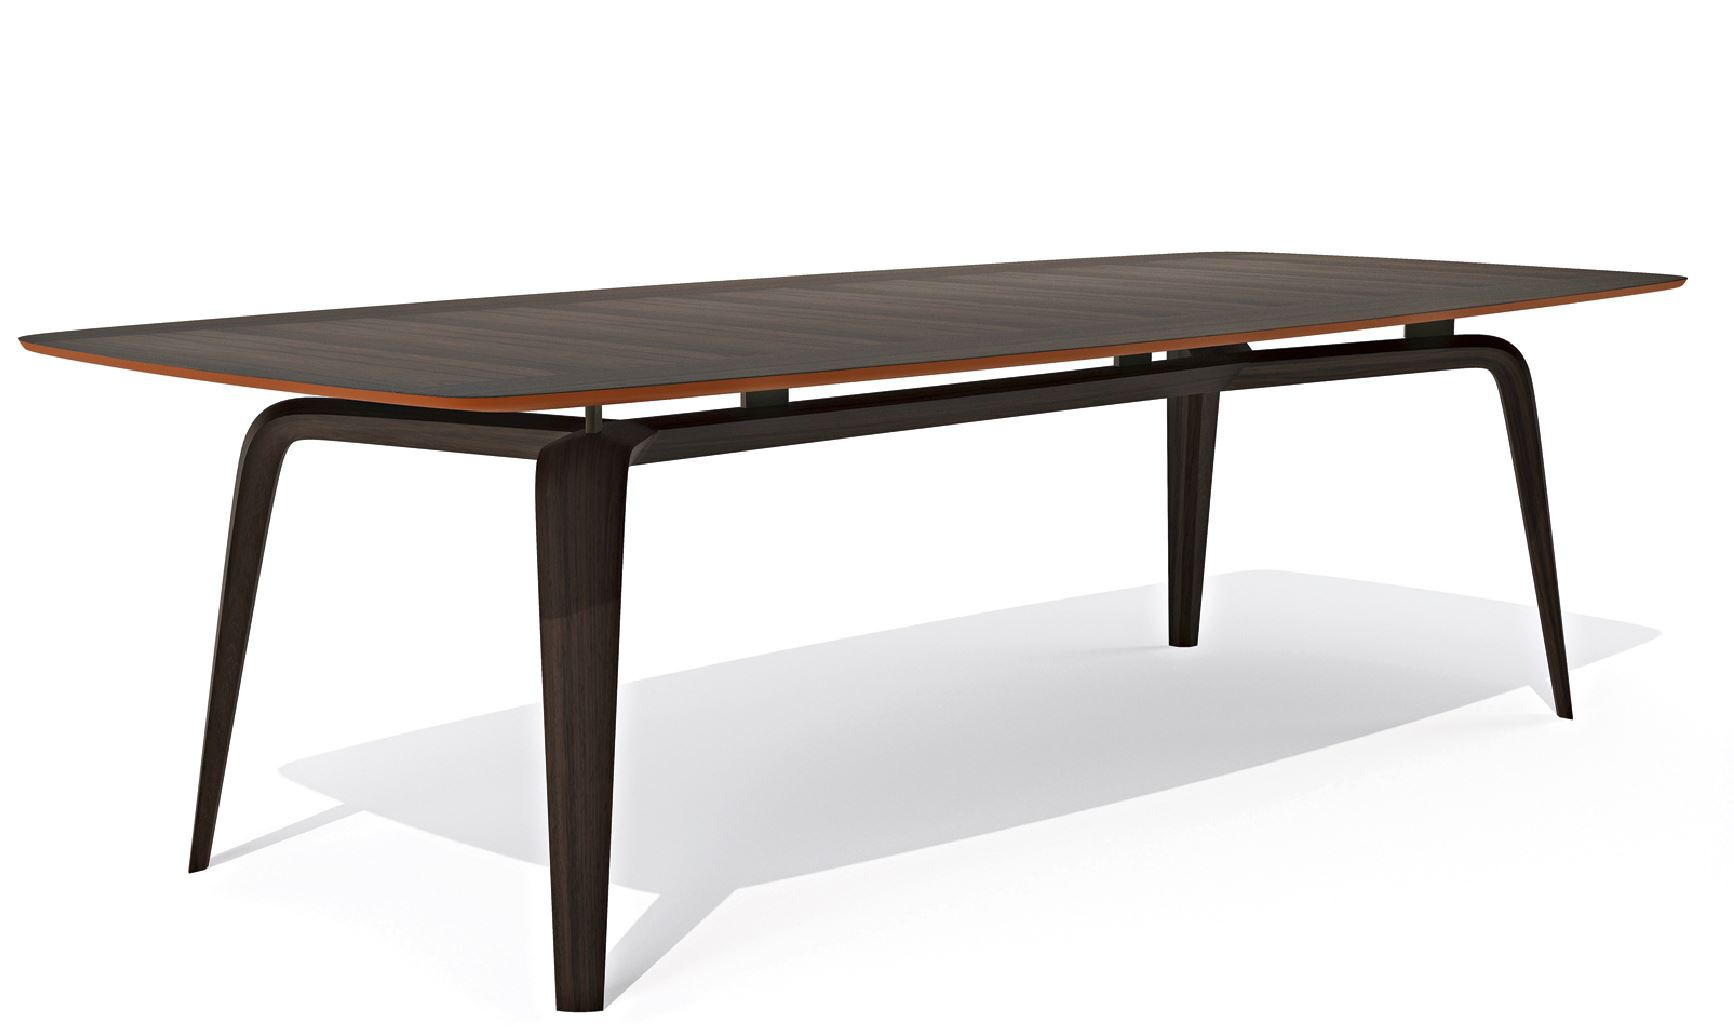 misuraemme furniture. Dining Table With Rectangular Countertop Gramercy, MisuraEmme Misuraemme Furniture M